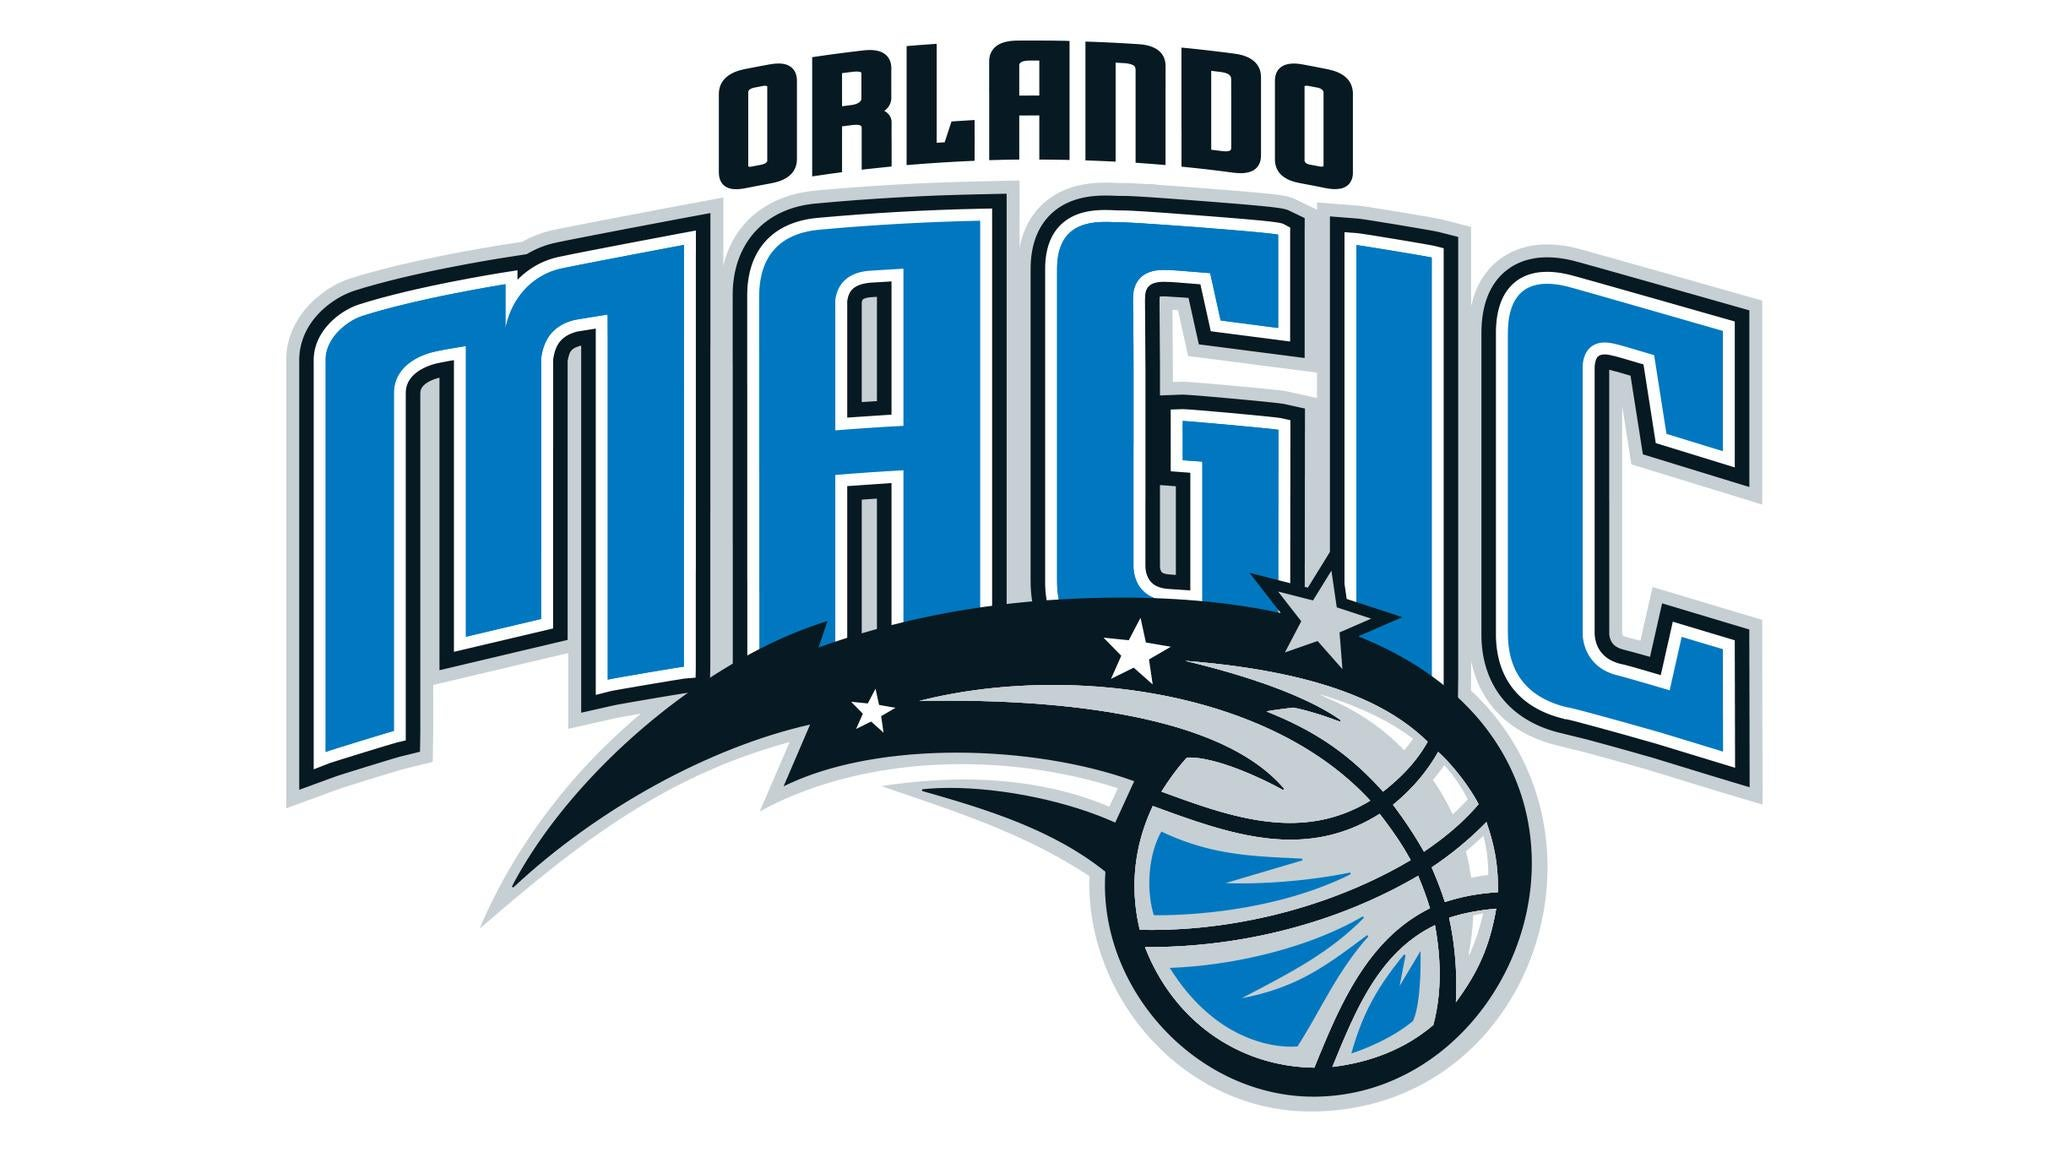 Orlando Magic vs. Houston Rockets at Amway Center